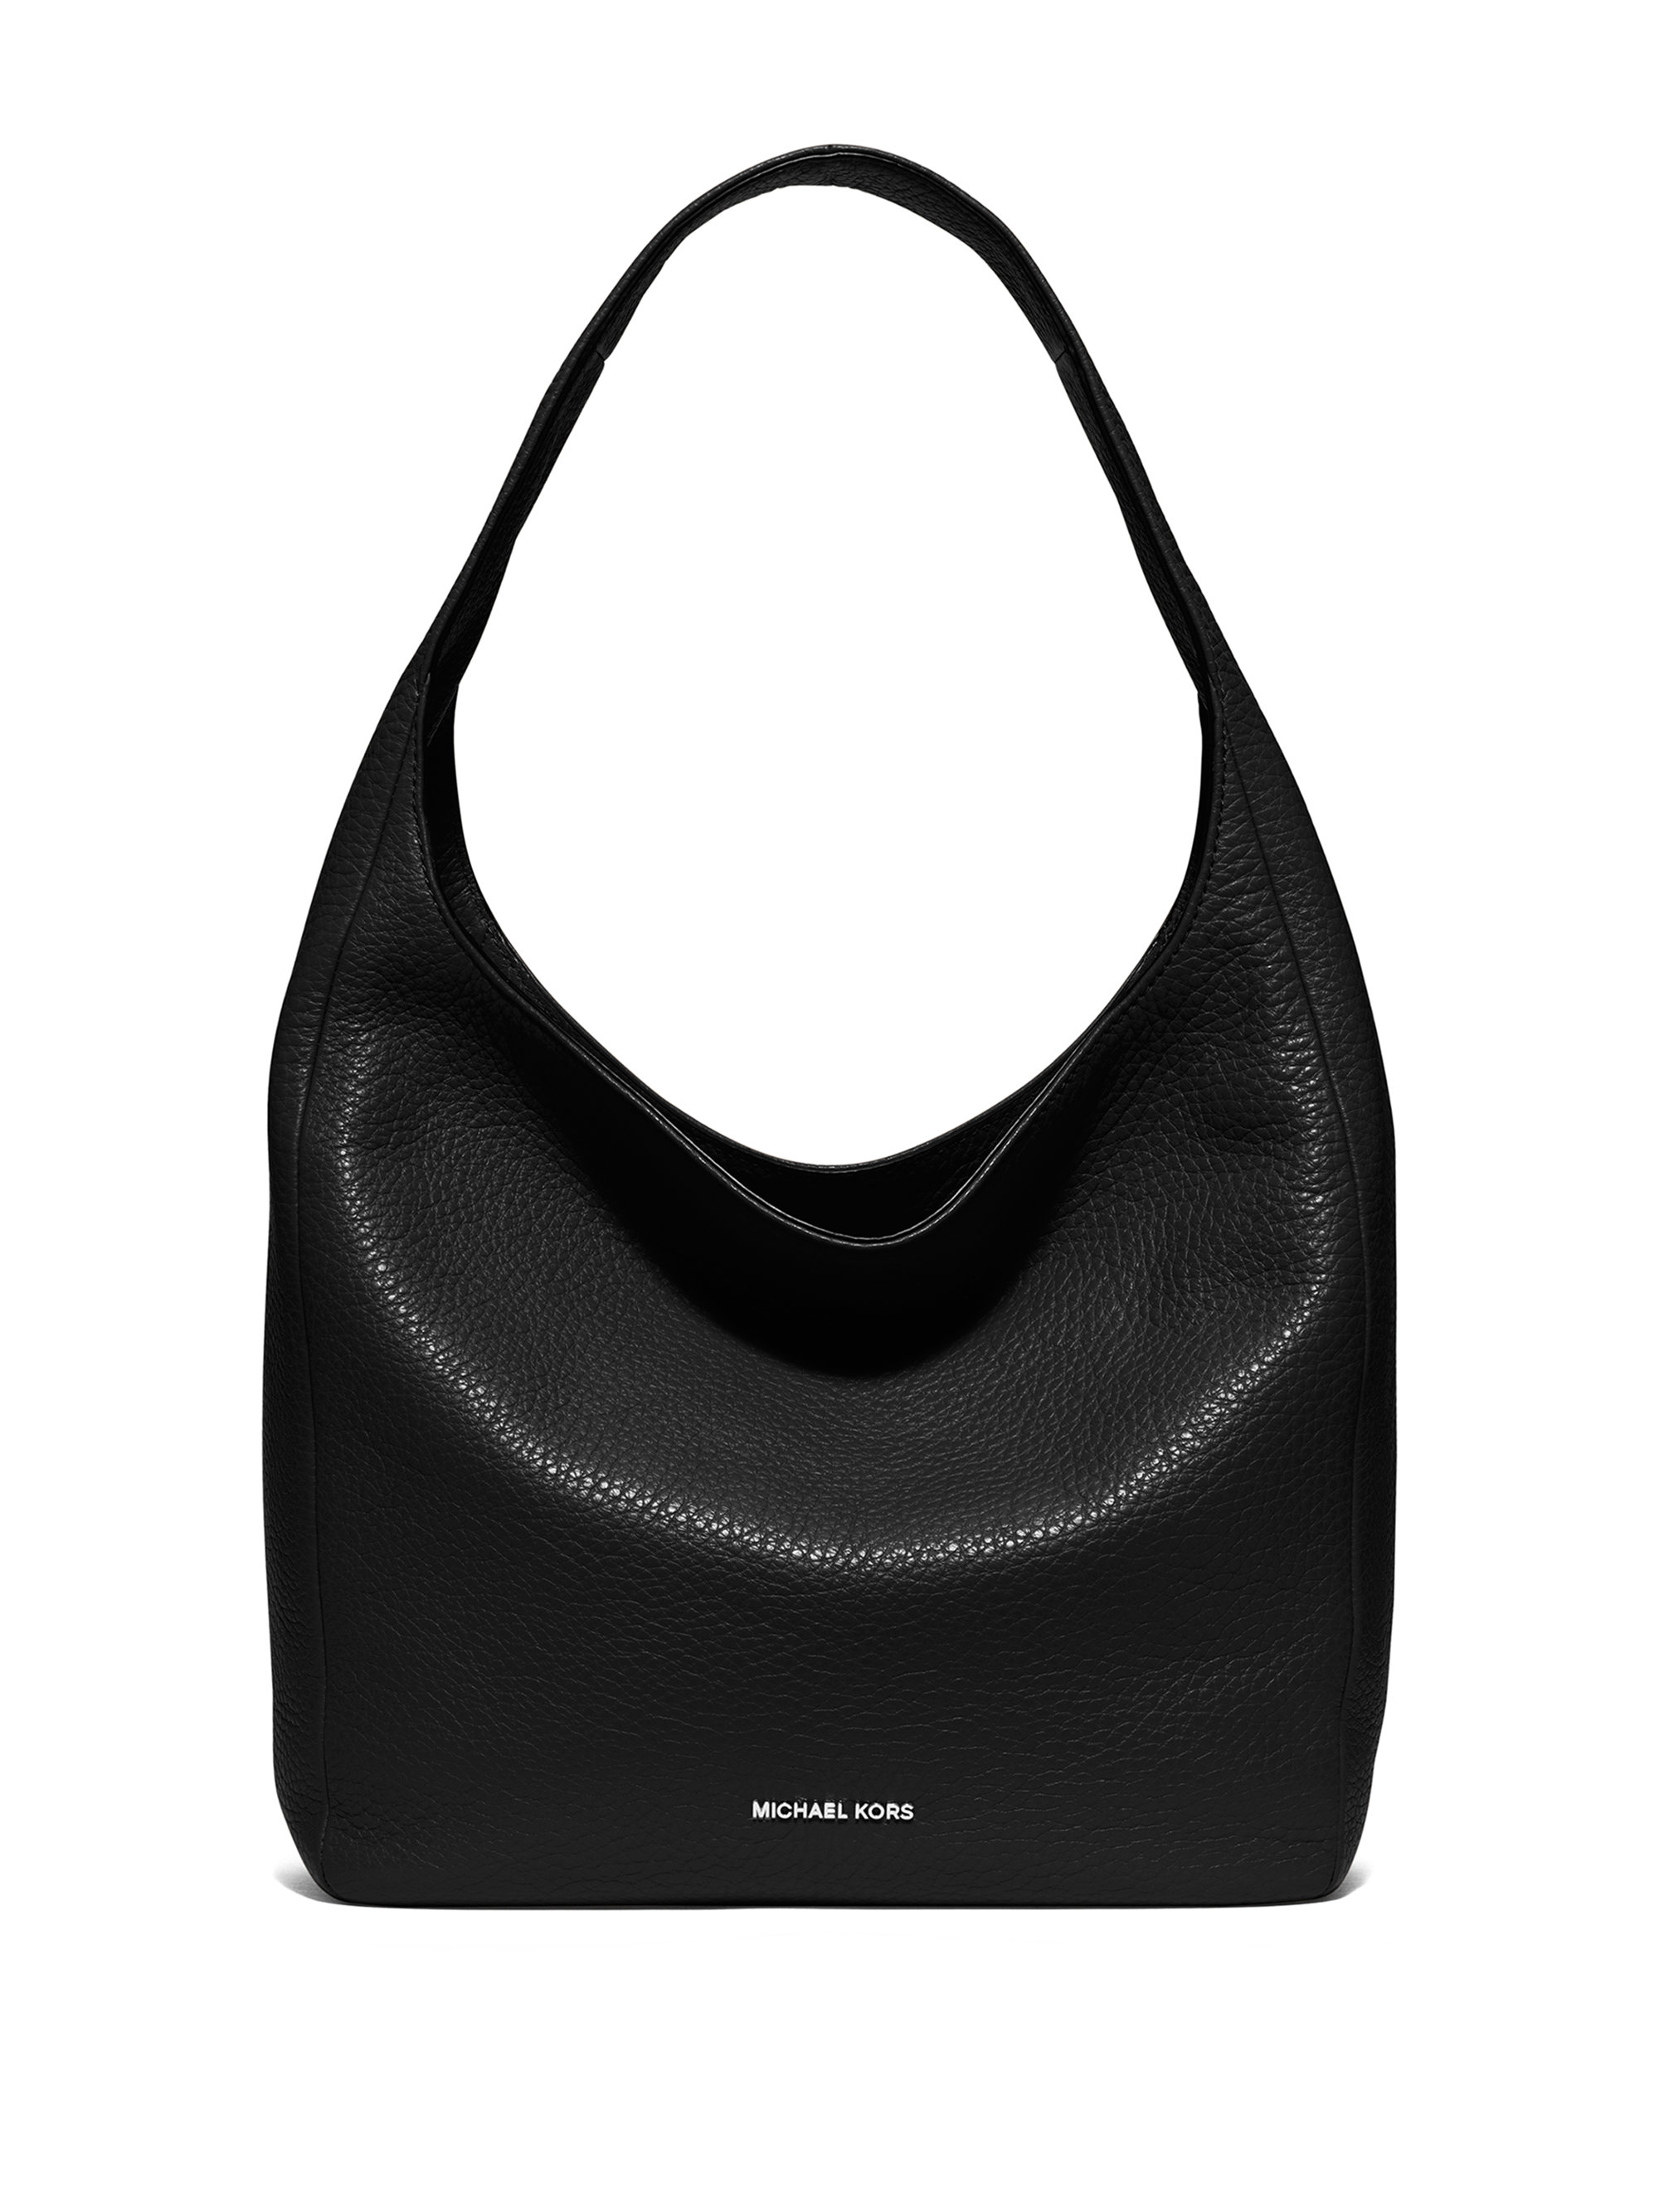 Michael michael kors Lena Large Leather Hobo Bag in Black | Lyst